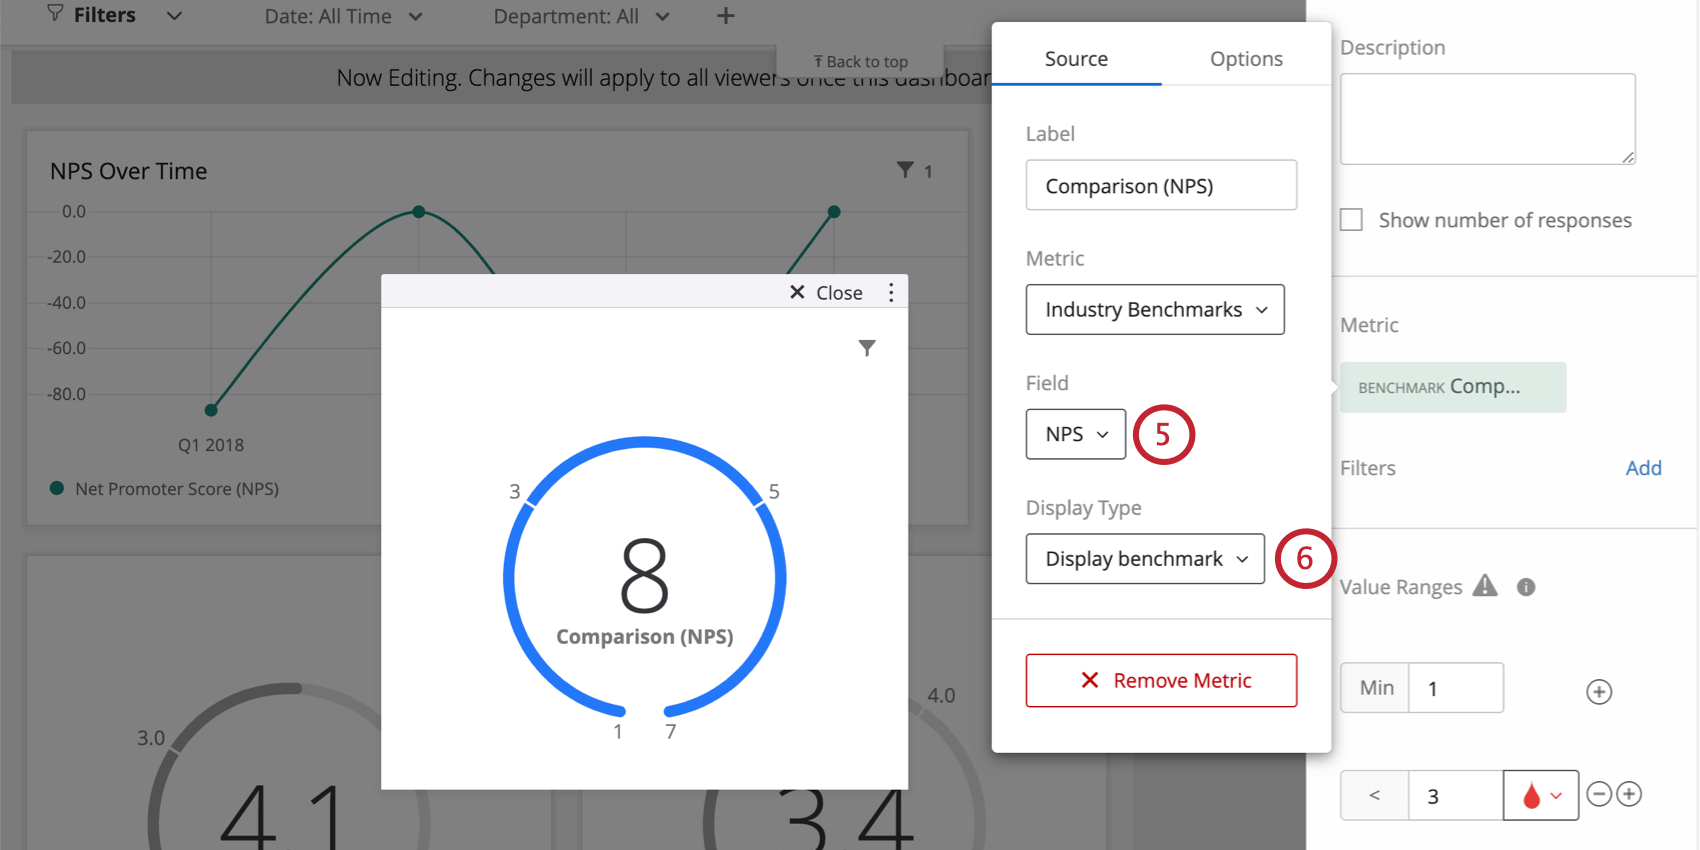 Field dropdown is next after metric, then display type